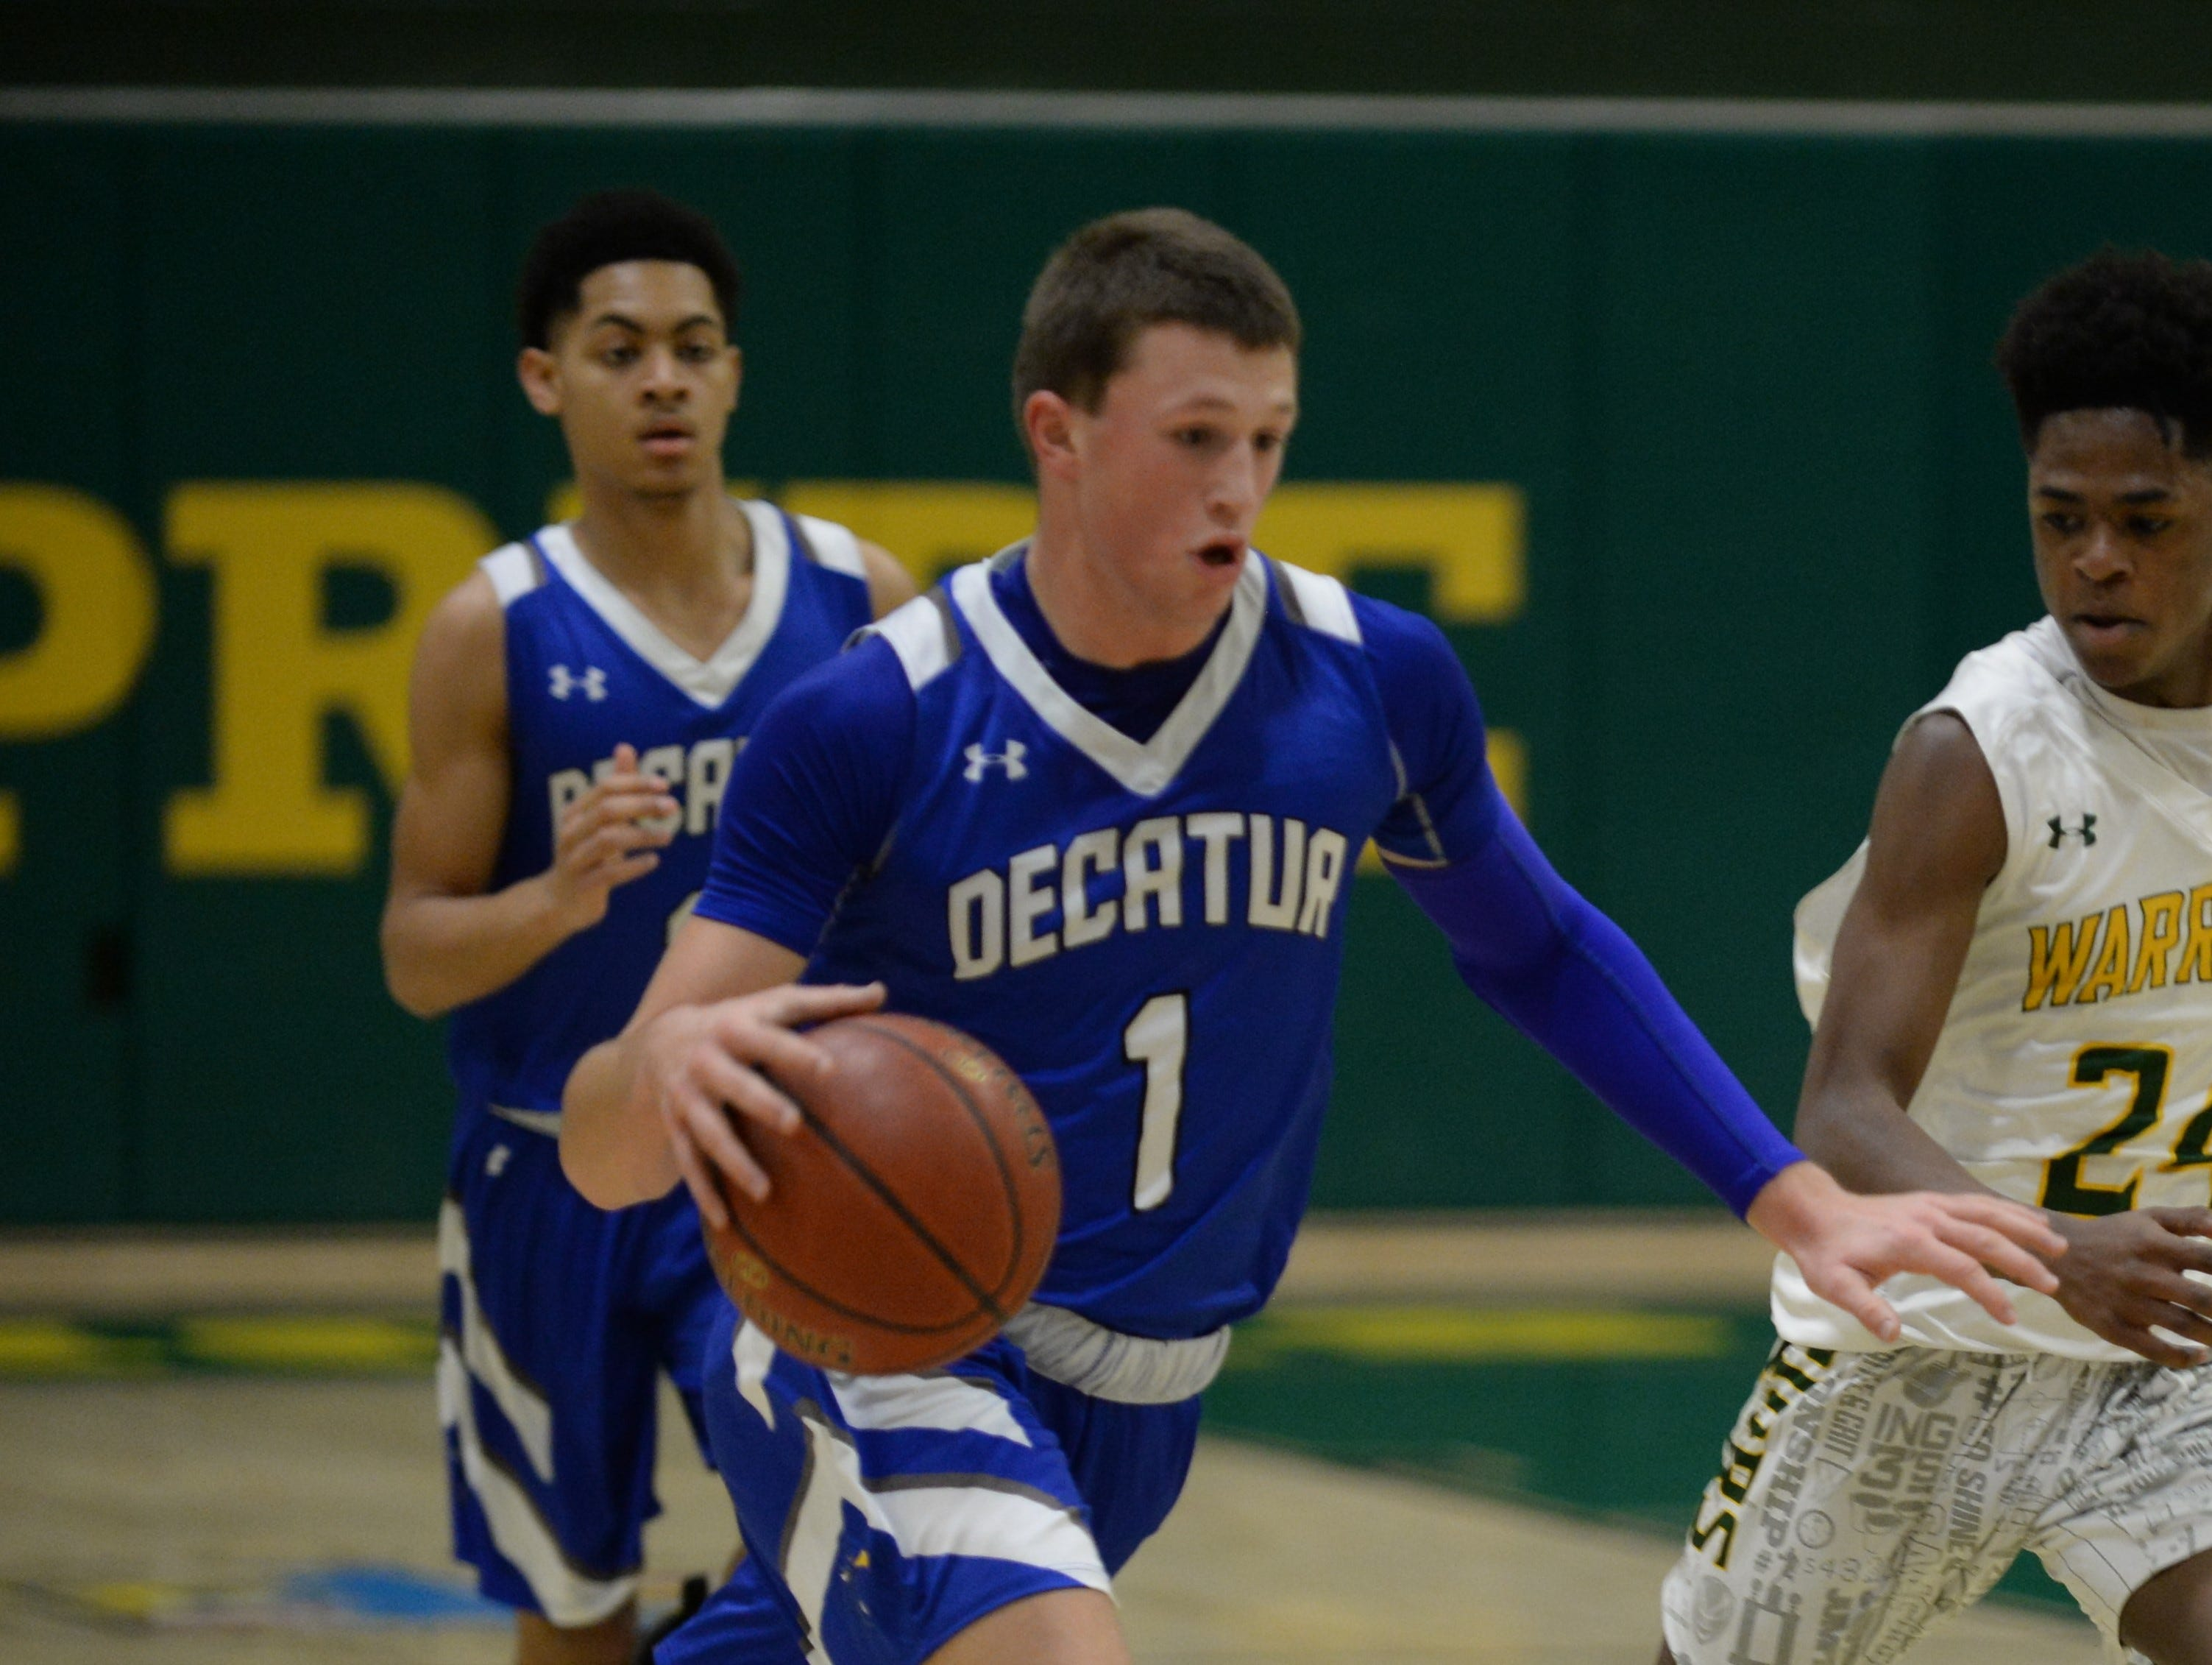 Stephen Decatur's Drew Haueisen takes the ball down court against Mardela on Tuesday, Feb. 5, 2019.